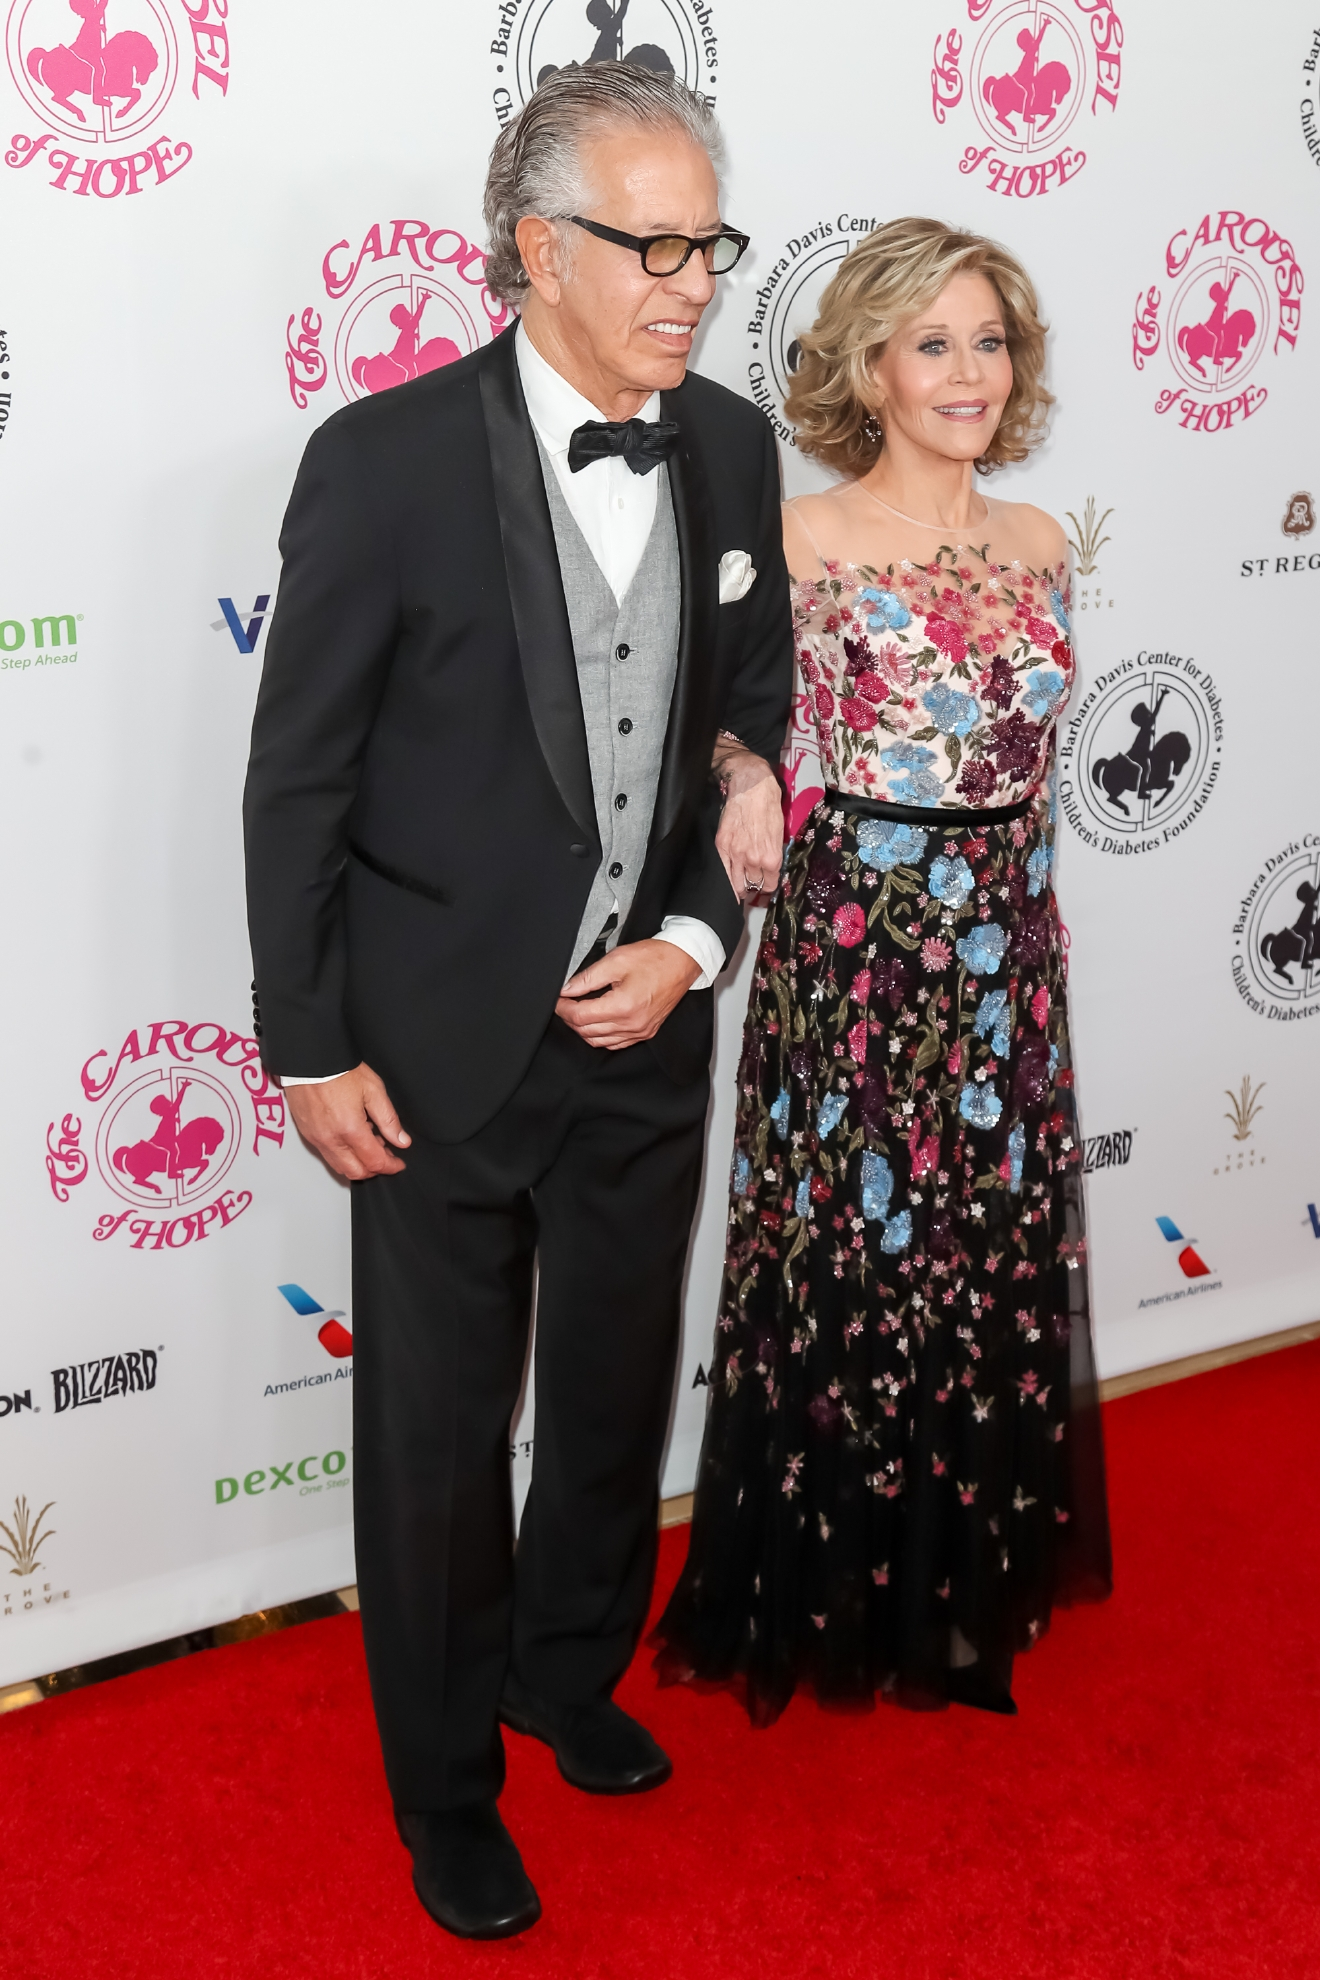 Richard Perry and Jane Fonda attending the 2016 Carousel of Hope Ball, held at the Beverly Hilton Hotel, in Beverly Hills, California.                                    Featuring: Richard Perry, Jane Fonda                  Where: Beverly Hills, California, United States                  When: 09 Oct 2016                  Credit: Michael Boardman/WENN.com